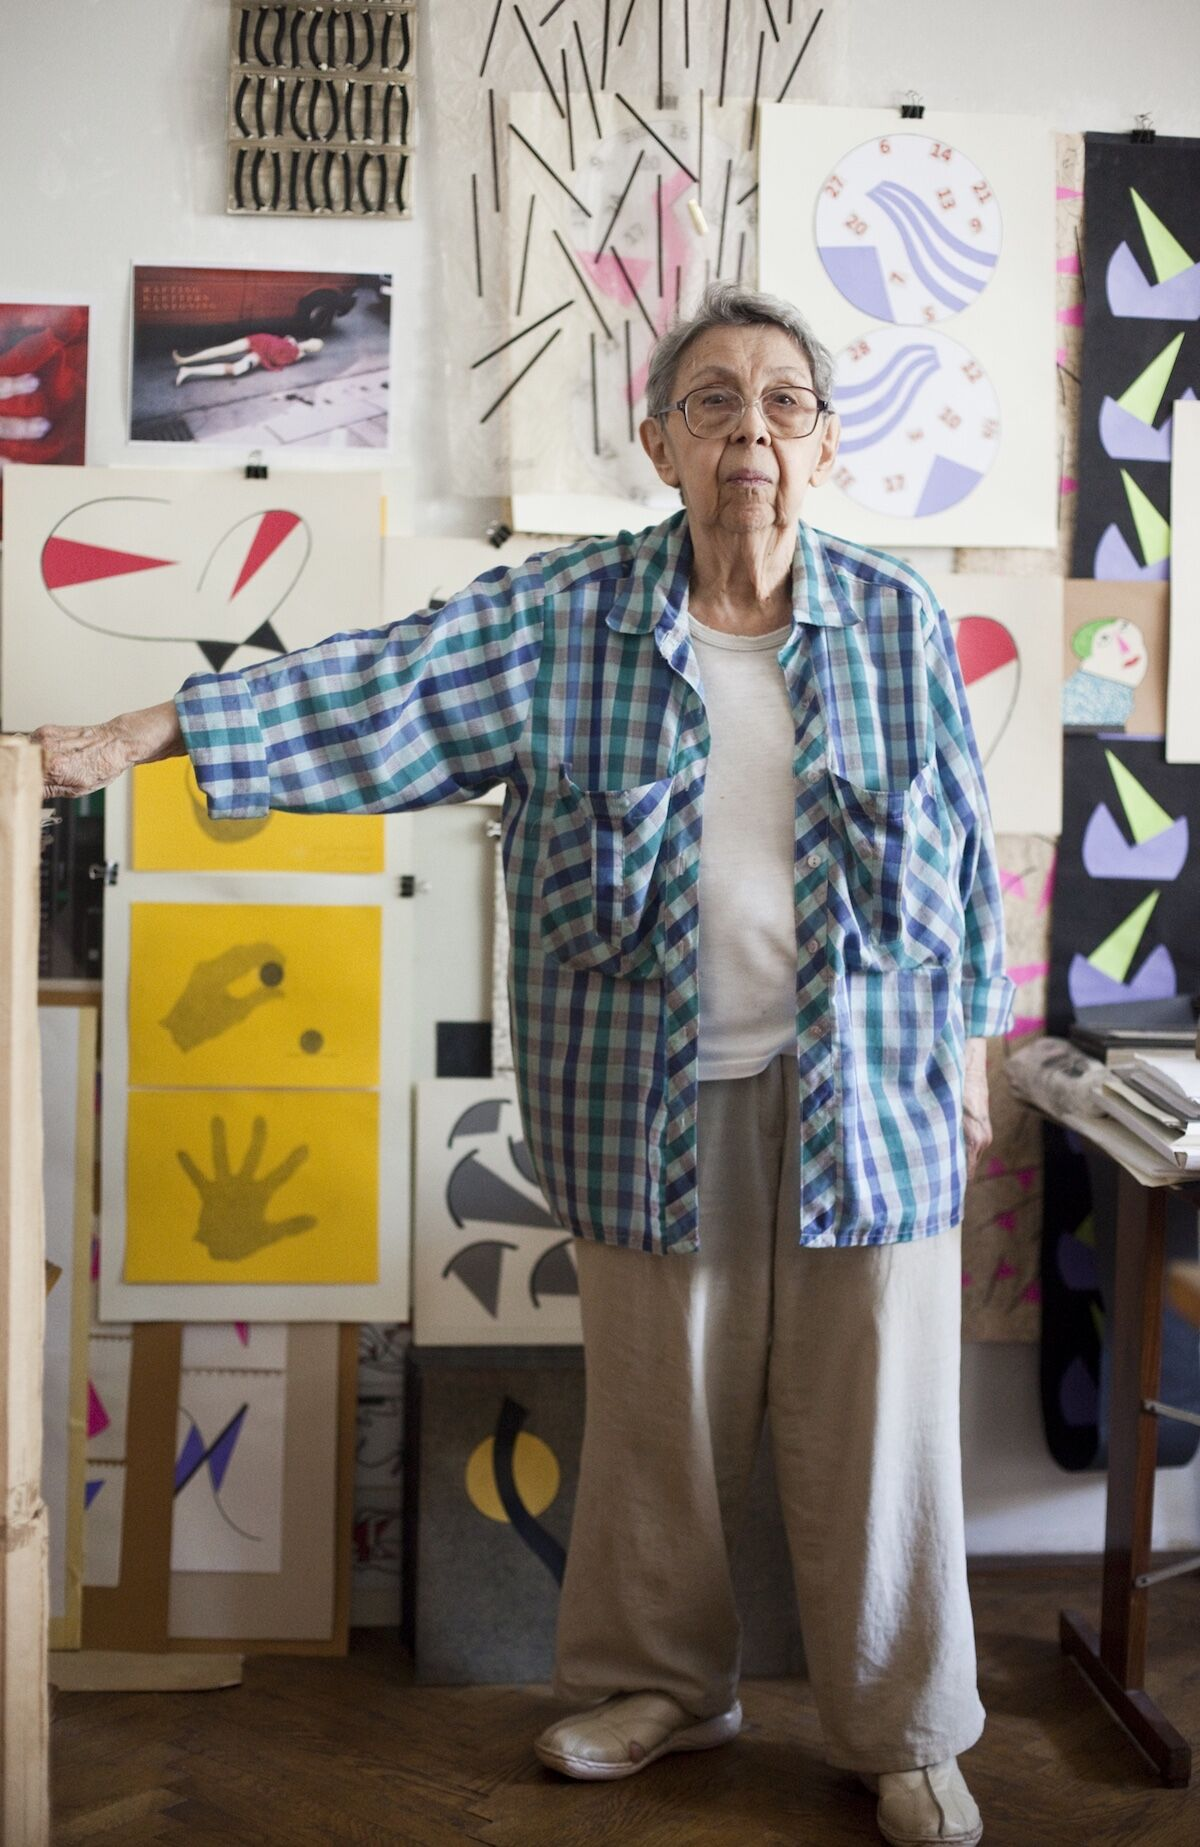 Geta Brătescu in 2015  Photo by Ștefan Sava, © Geta Brătescu, courtesy Ivan Gallery and Hauser & Wirth.